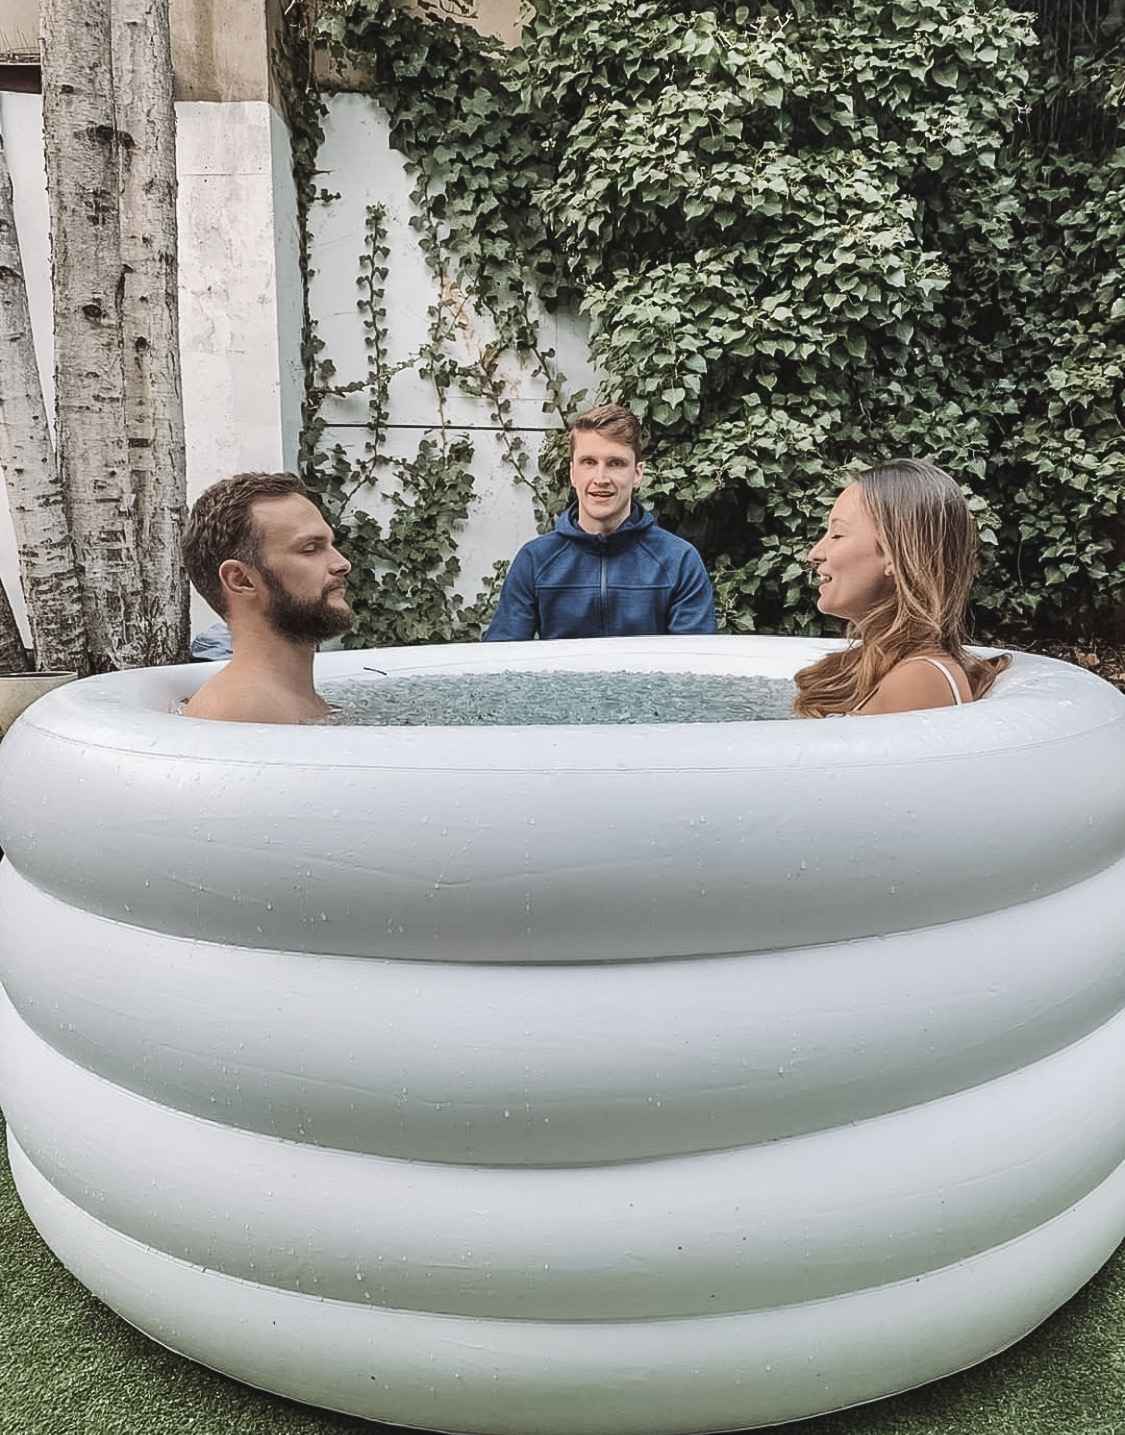 The Wim Hof Technique: Breath + Ice